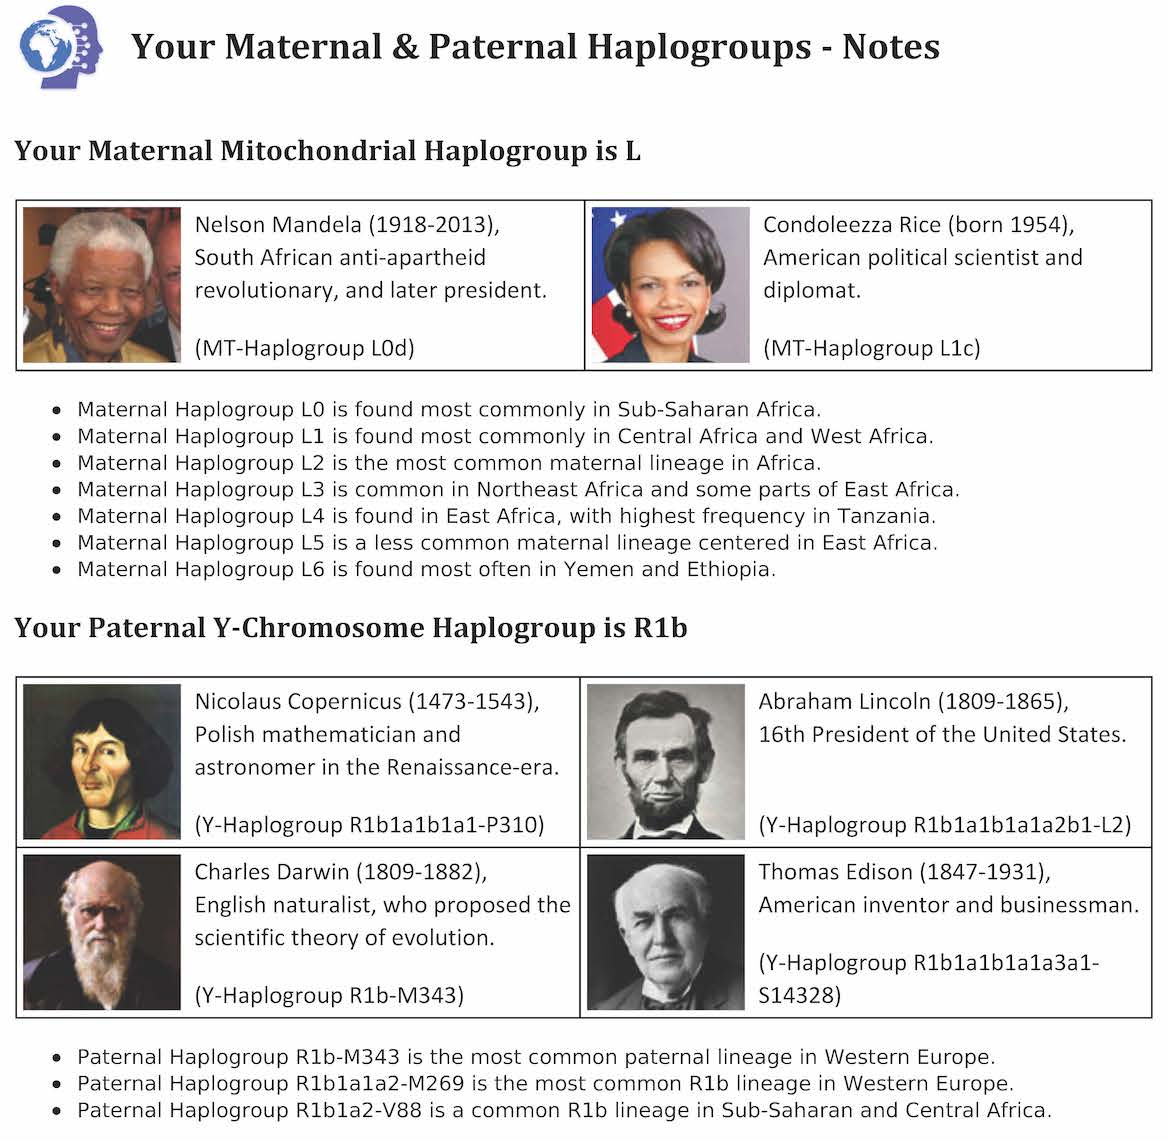 Compare your DNA haplogroup to historical figures